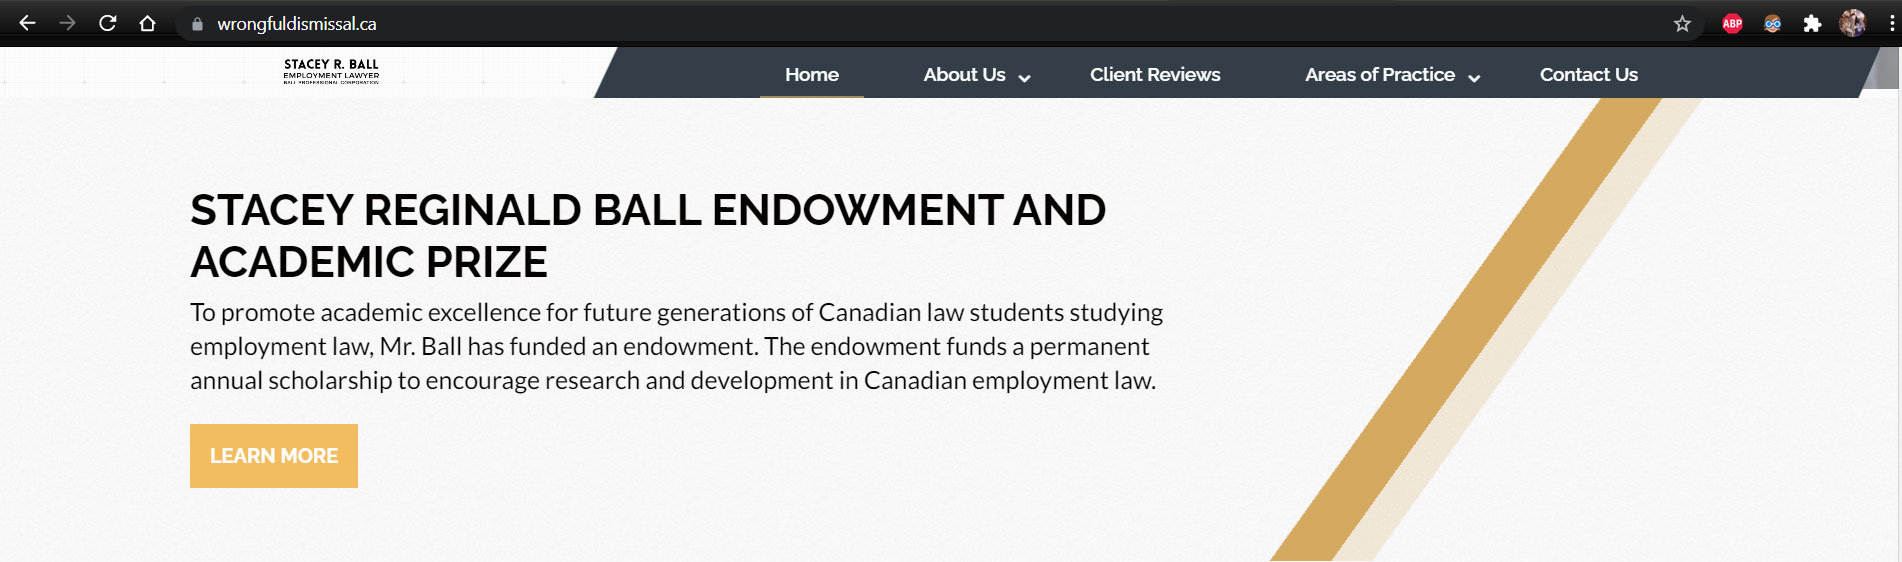 Sponsorship Opportunities Backlinks Building For Lawyers Canada